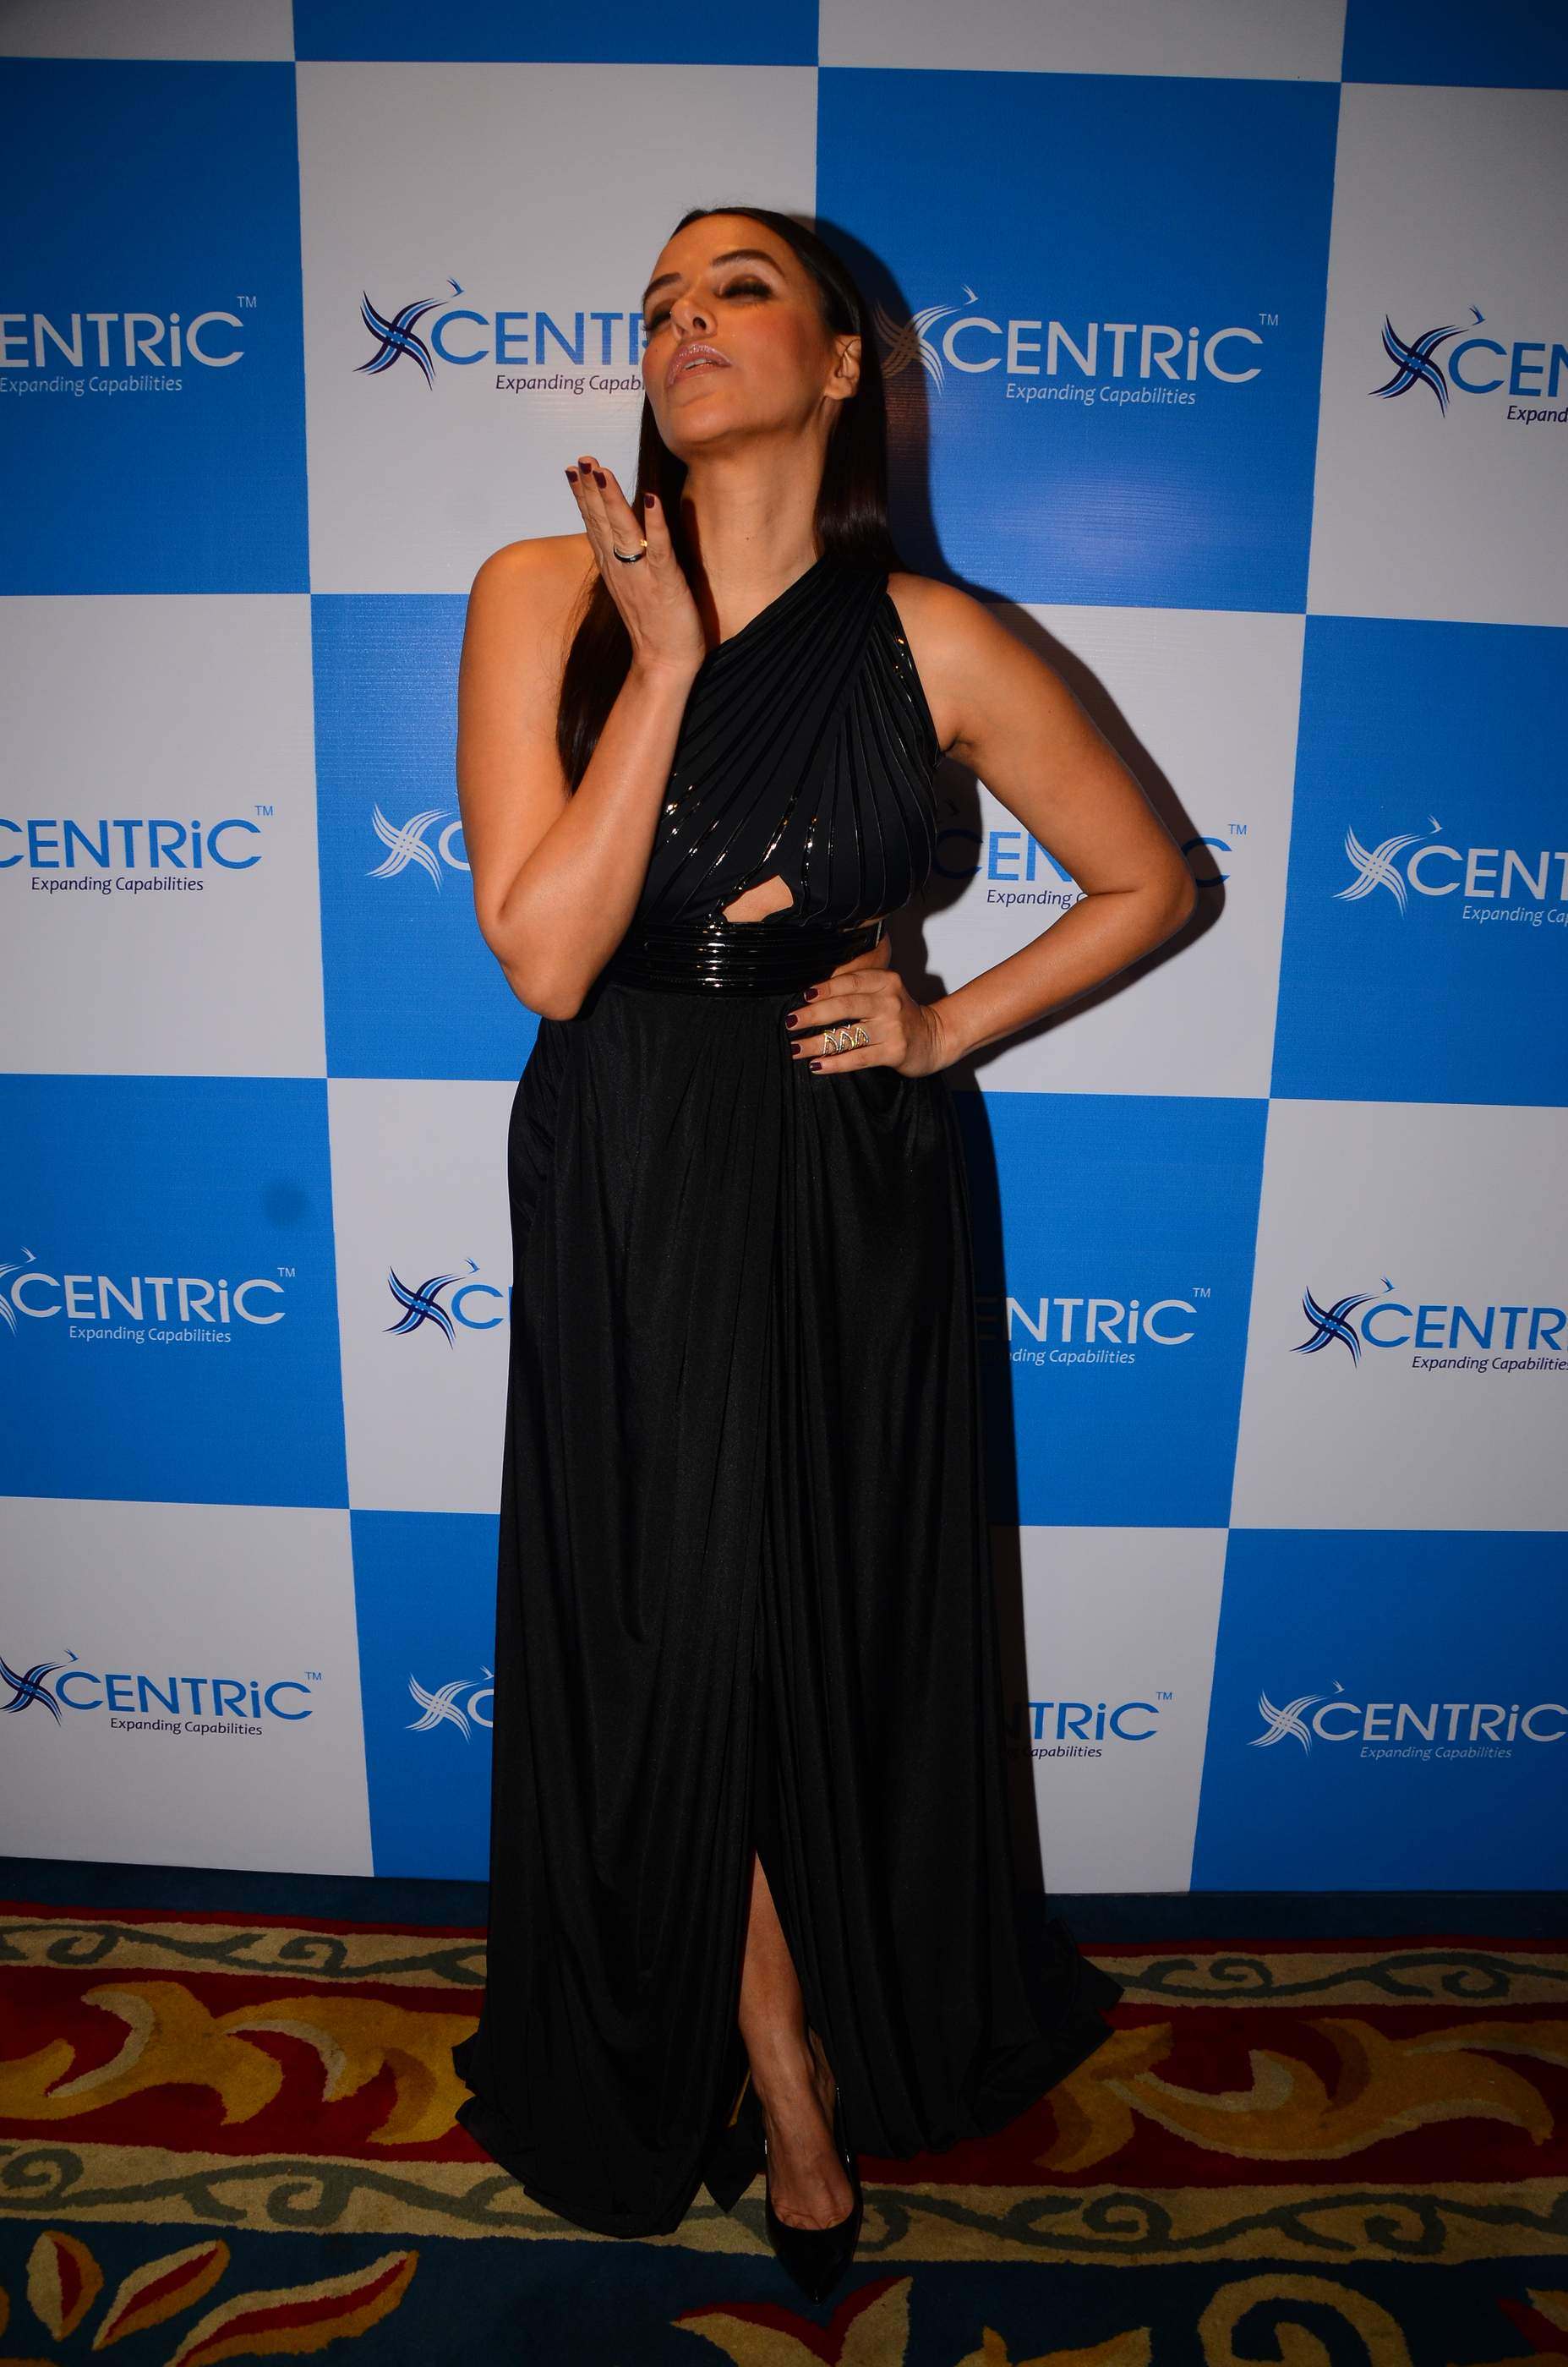 HOT Photo Stills Of Beauty Queen Neha Dhupia | Xcentric HOT Photo Stills Of Beauty Queen Neha Dhupia | Xcentric Neha Dhupia Xcentric 19